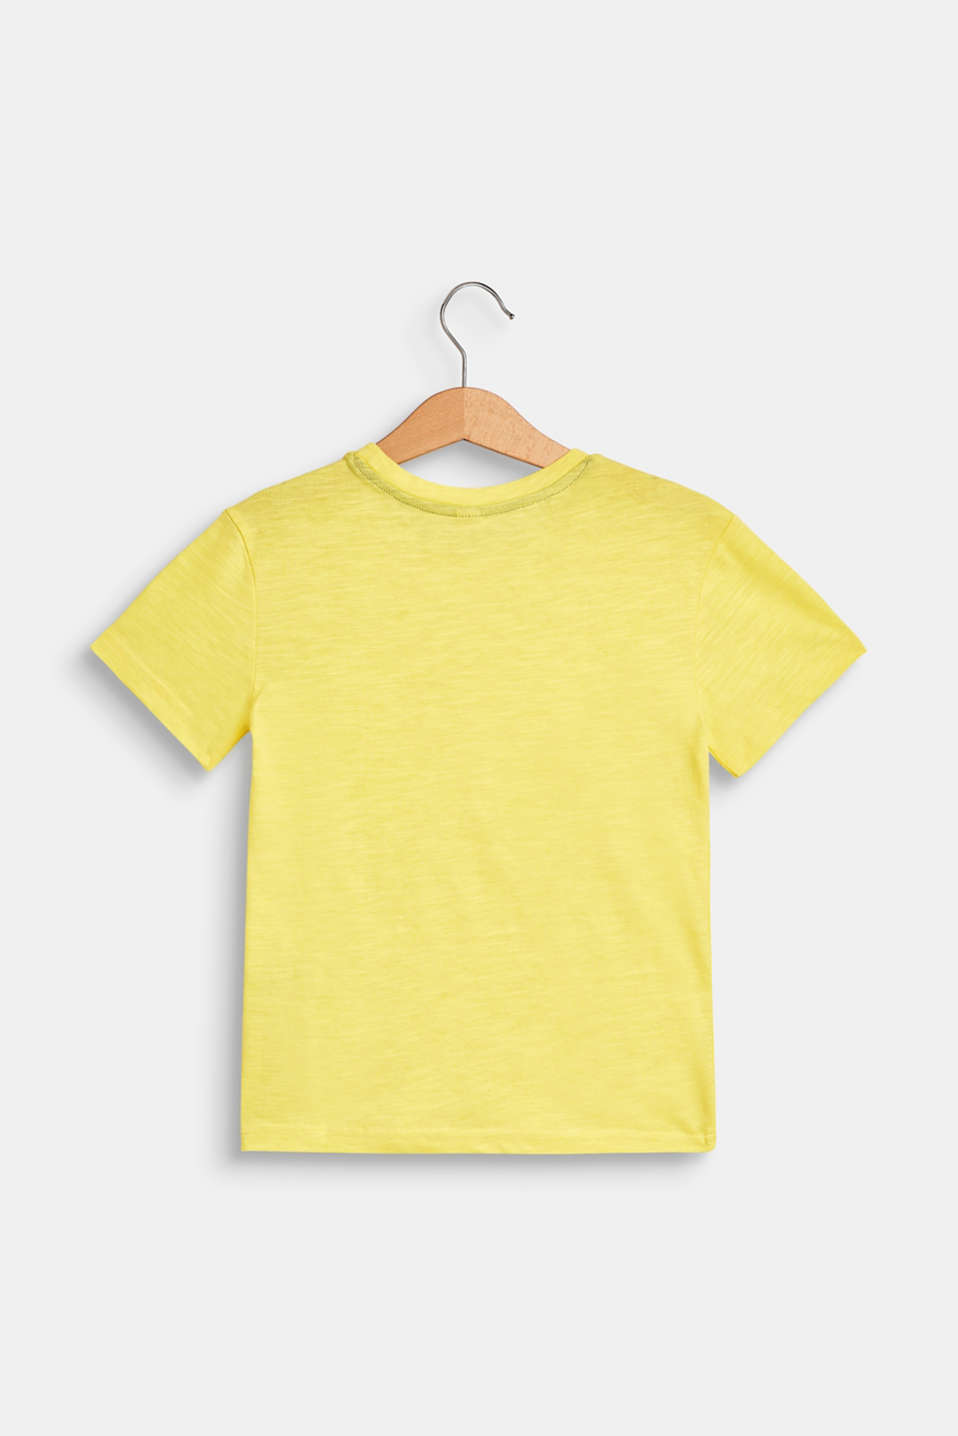 T-shirt with a summer print, 100% cotton, LEMON, detail image number 1